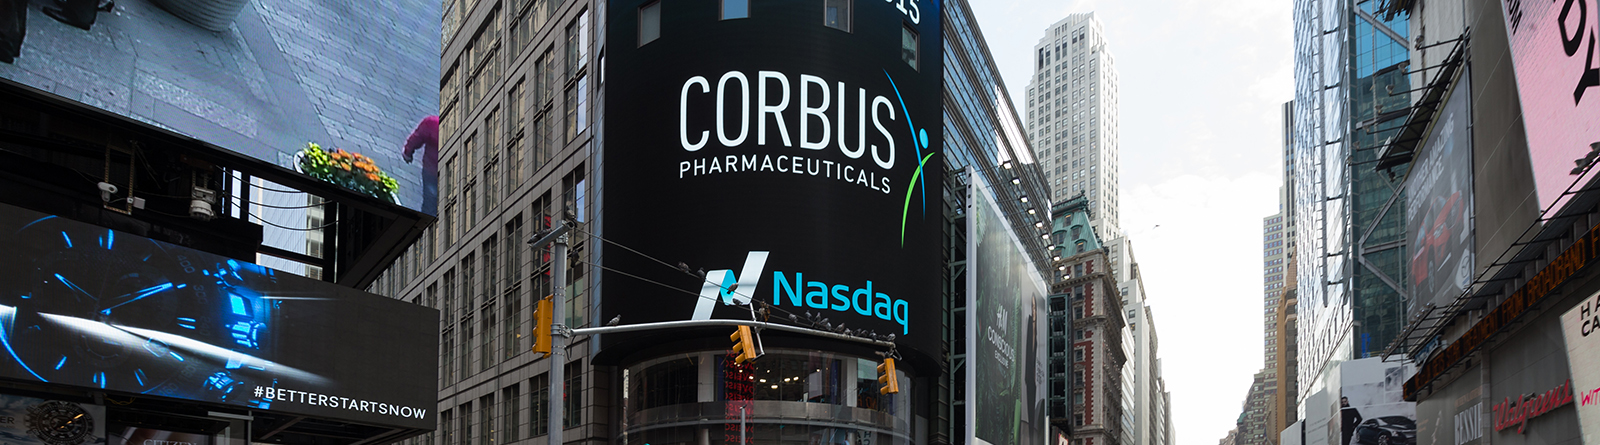 Corbus Pharmaceuticals to Present at the Oppenheimer 25th Annual Healthcare Conference on December 10, 2014 Banner